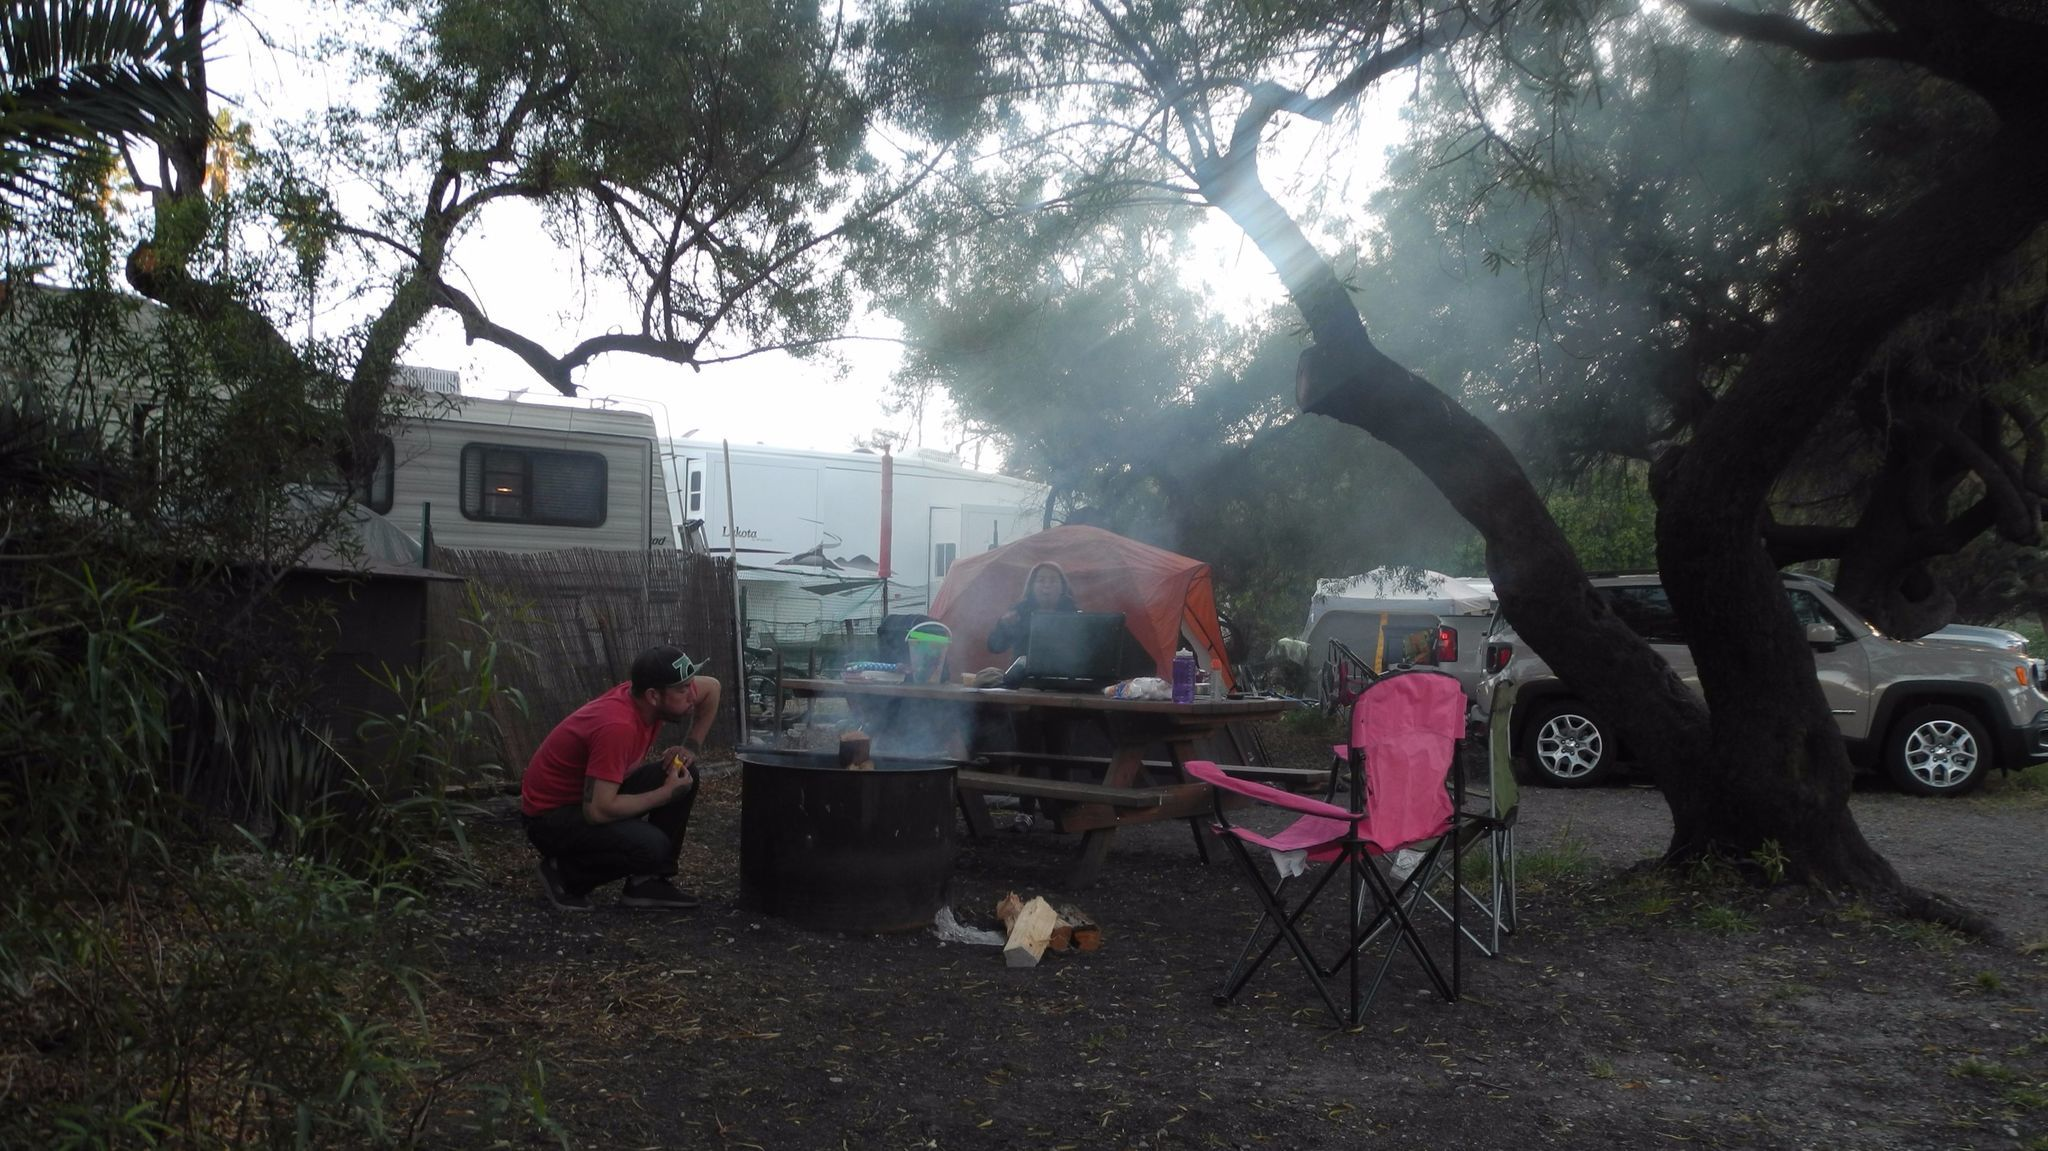 Elyie Florez blows into the fire in Refugio State Beach campsite while writer Denise Florez prepares the stove to sauté vegetables, May 20, 2017.